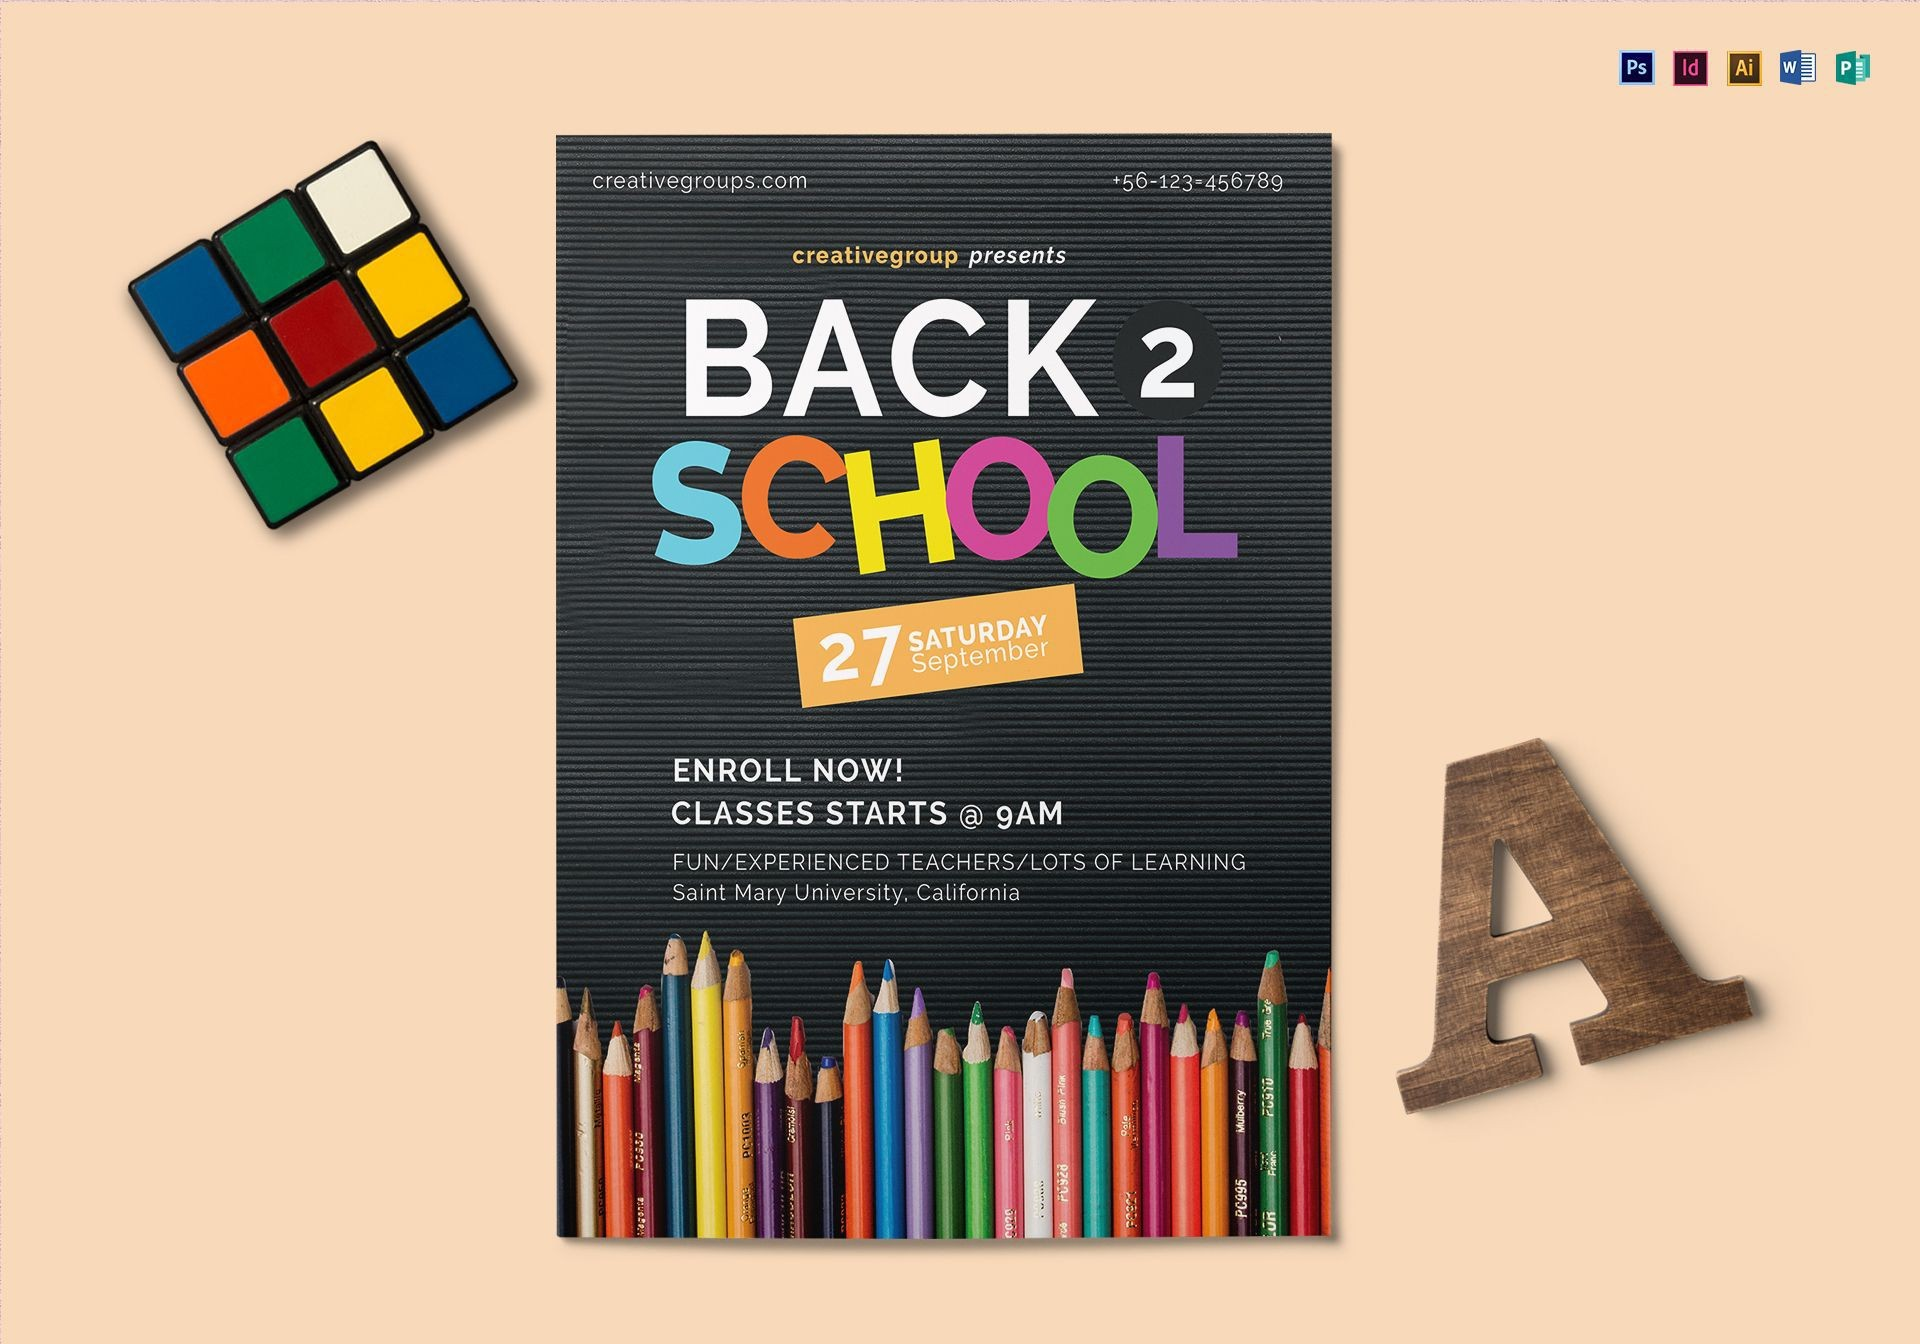 006 Best Free Back To School Flyer Template Word Design 1920